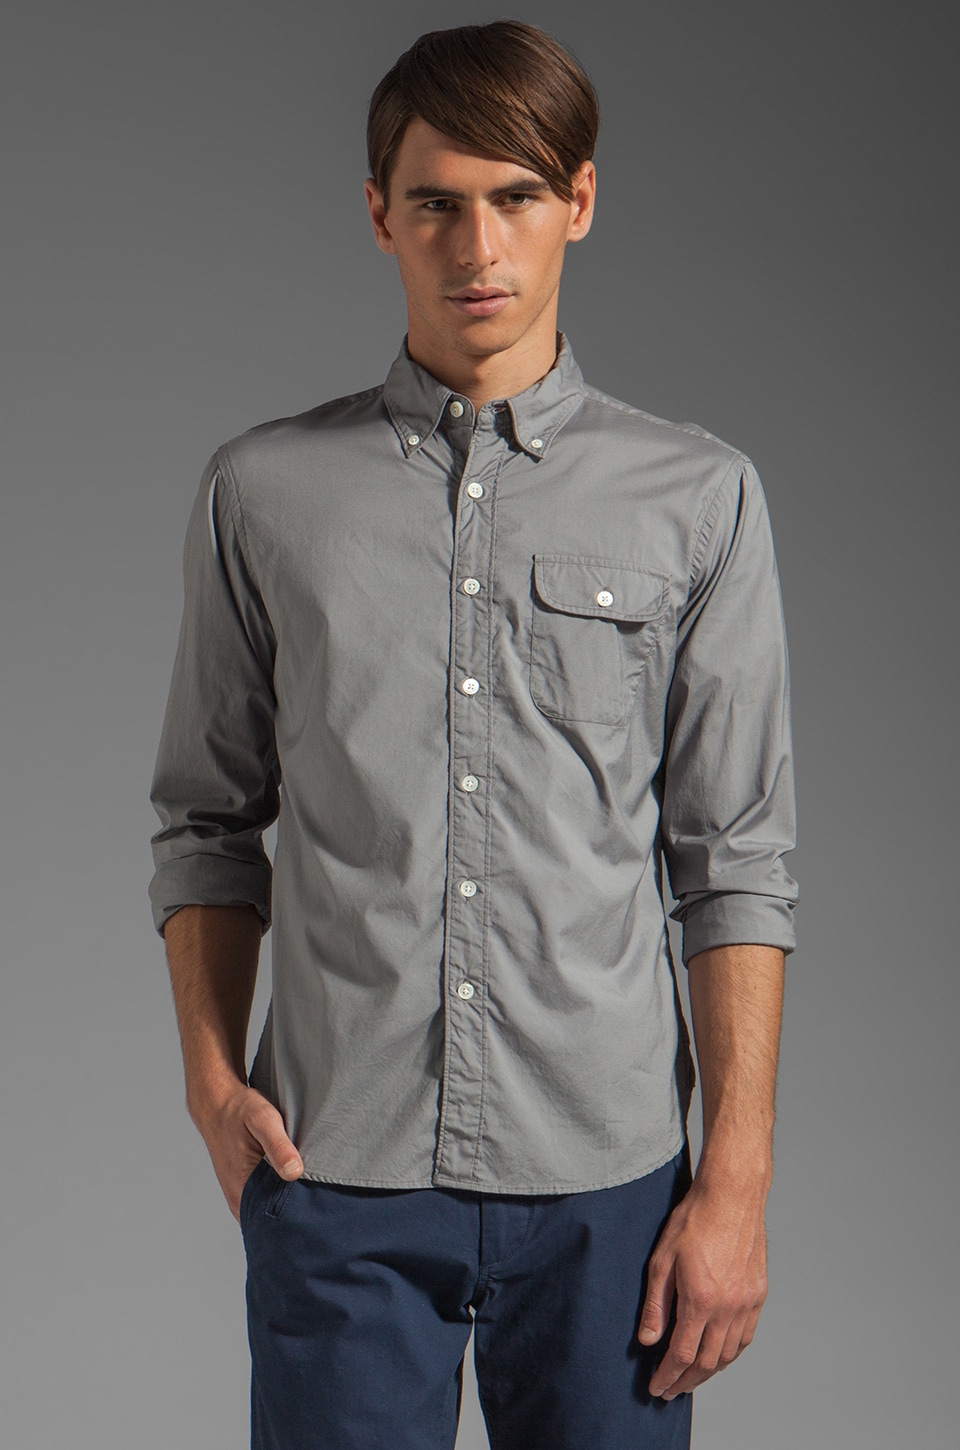 TODD SNYDER Solid Poplin Button Pocket Shirt in Grey